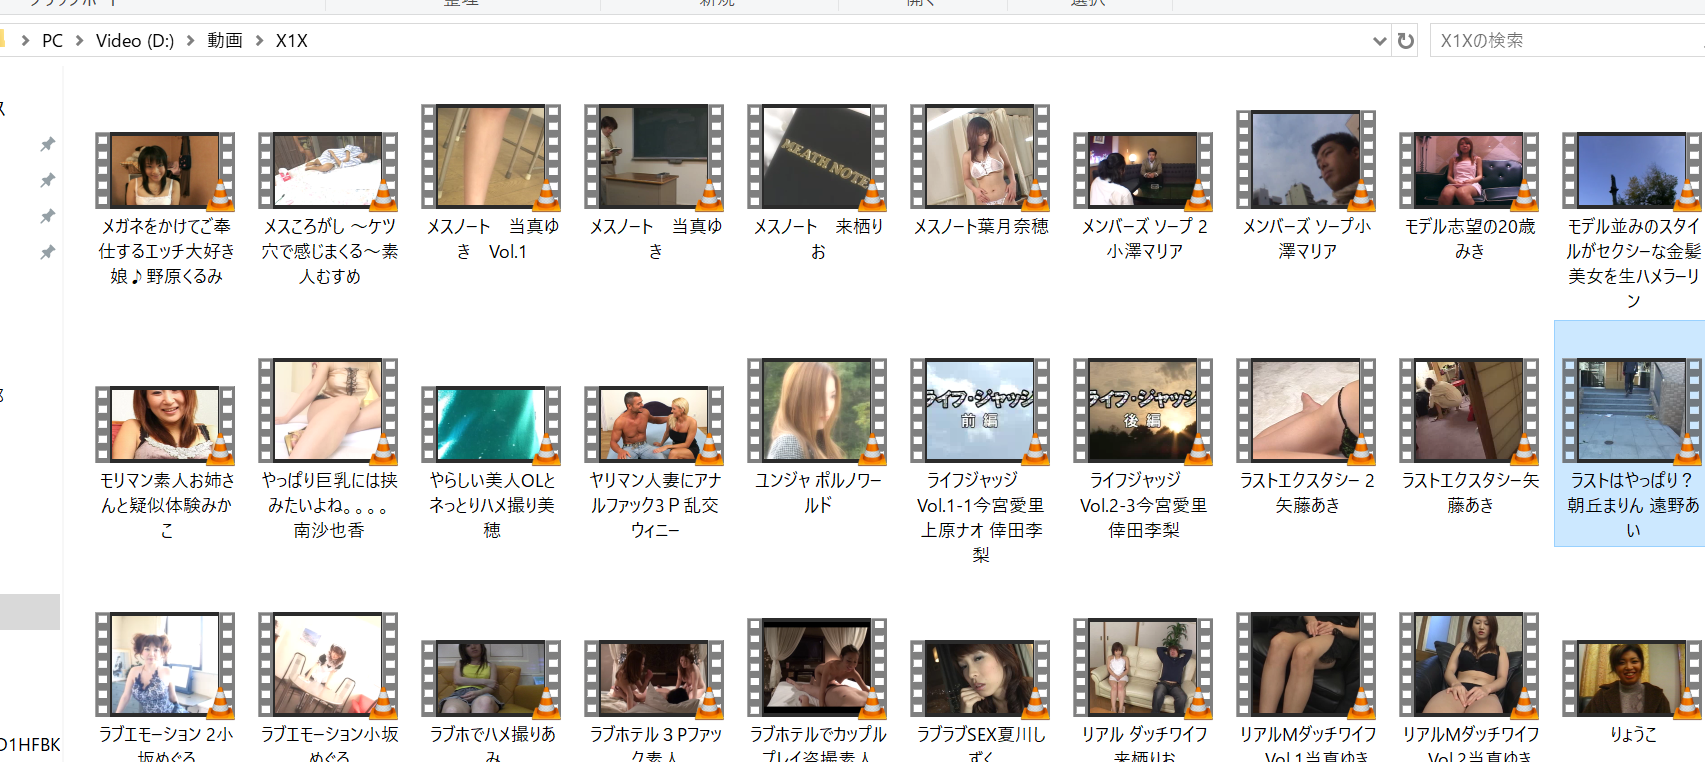 some of the uncensored JAV erotic videos I downloaded when I was an X1X member